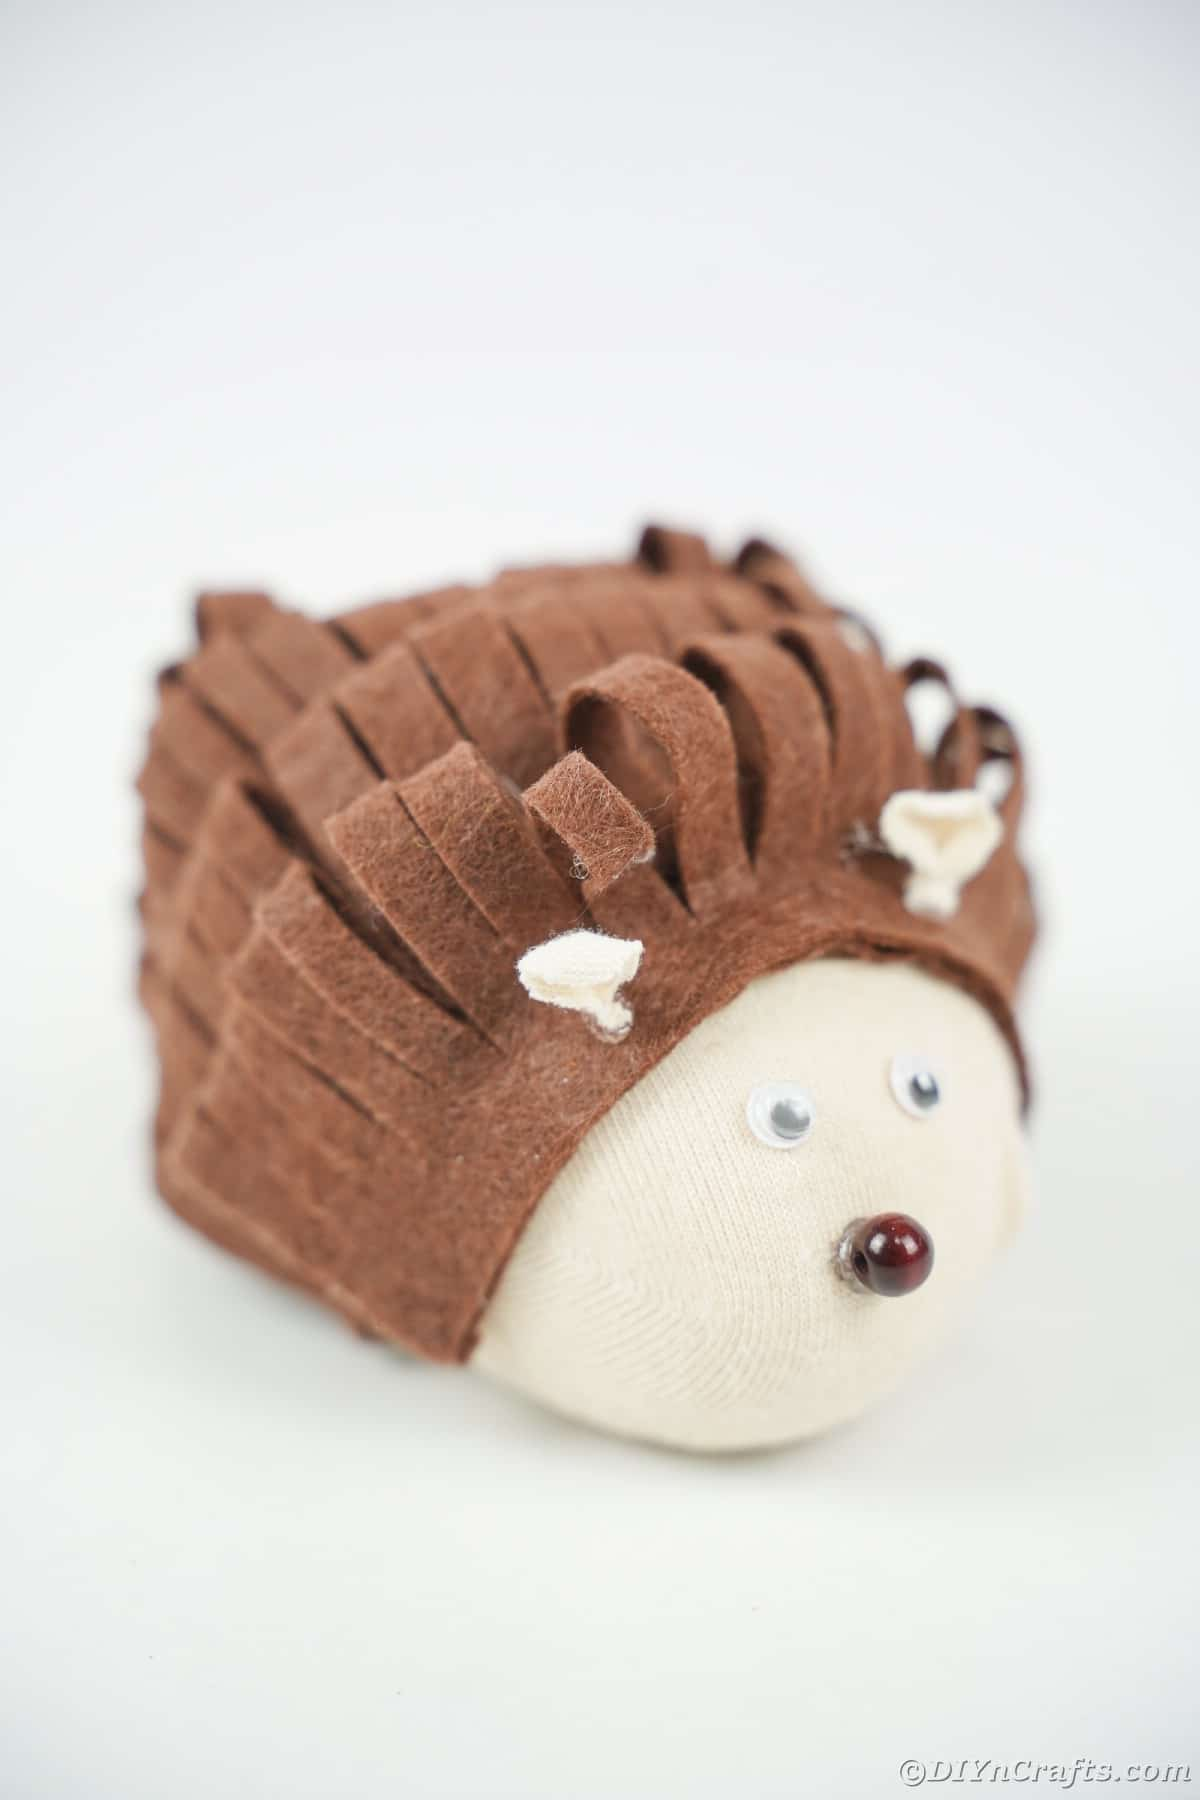 White background with stuffed hedgehog